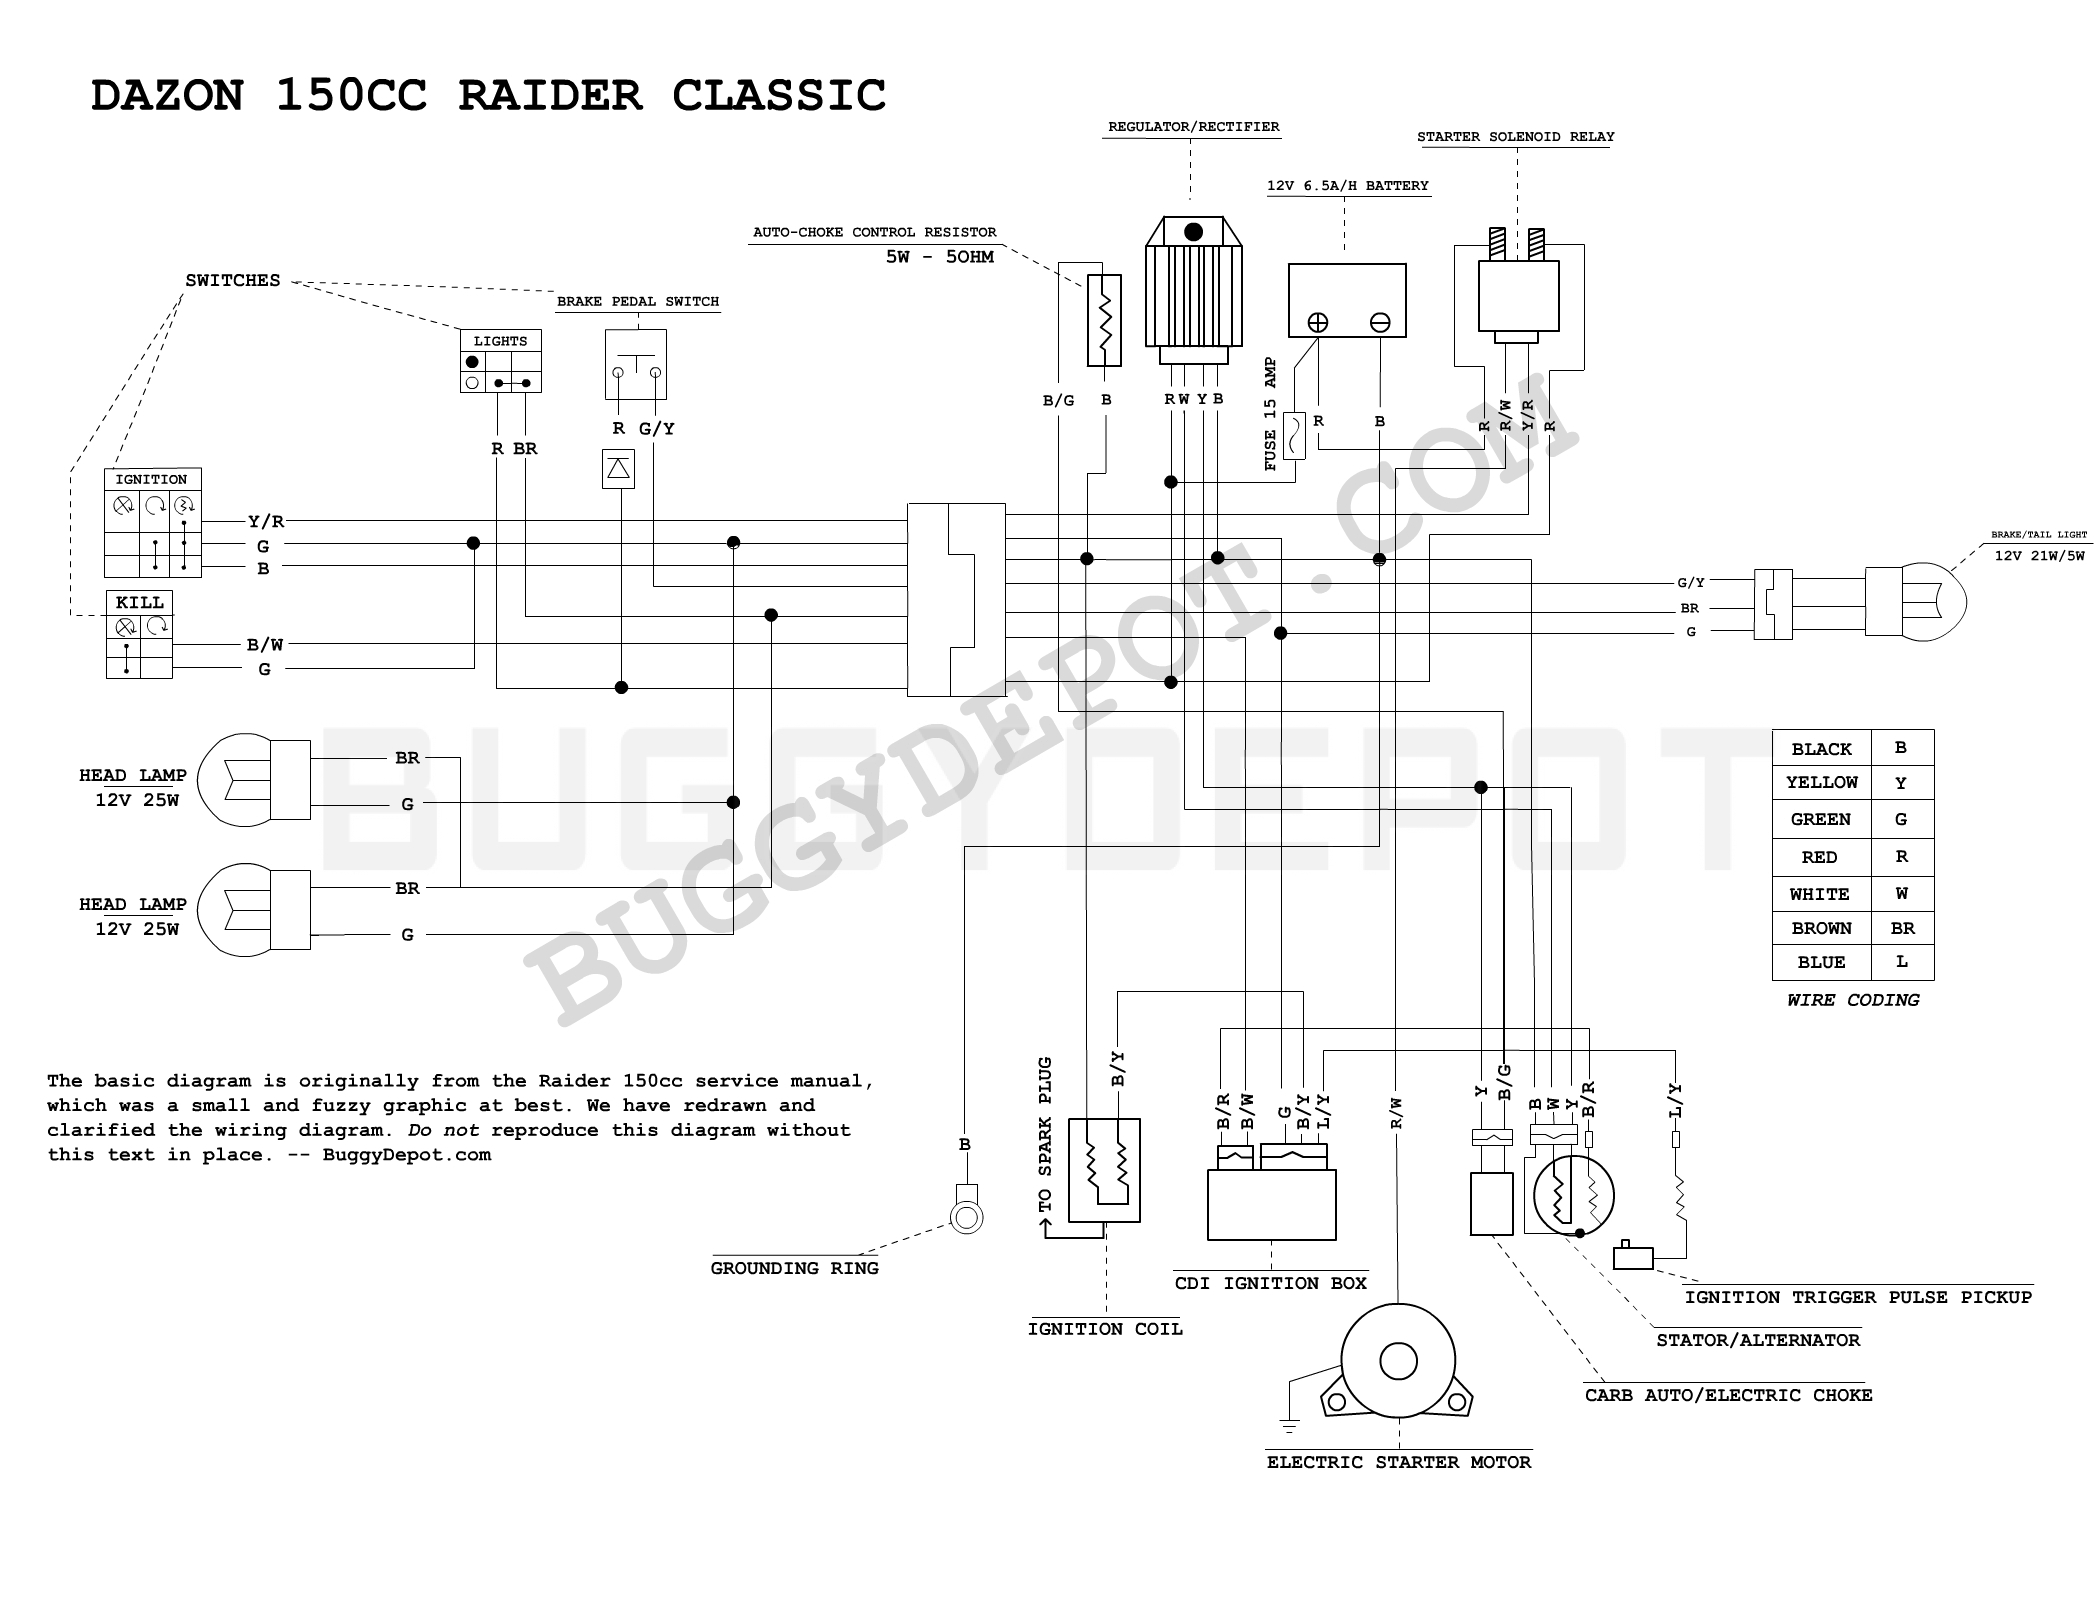 article_33_1278205207 gy6 150cc ignition troubleshooting guide no spark? buggy depot taotao ata 125 wiring diagram at bayanpartner.co